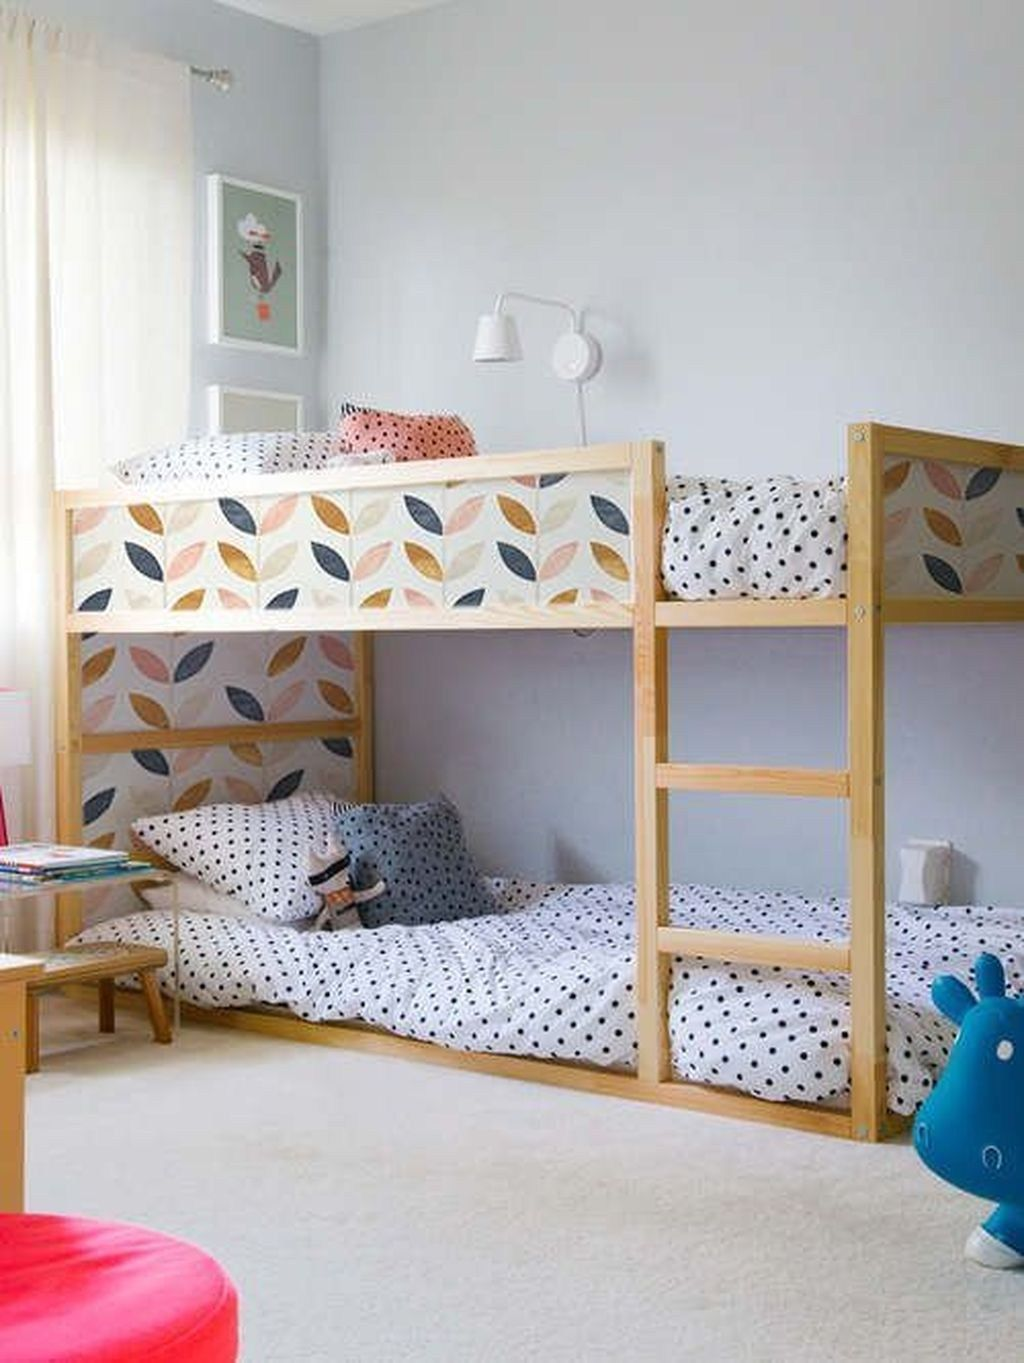 Schlafzimmer Ideen Hochbett Cool Ikea Kura Beds Ideas For Your Kids Room11